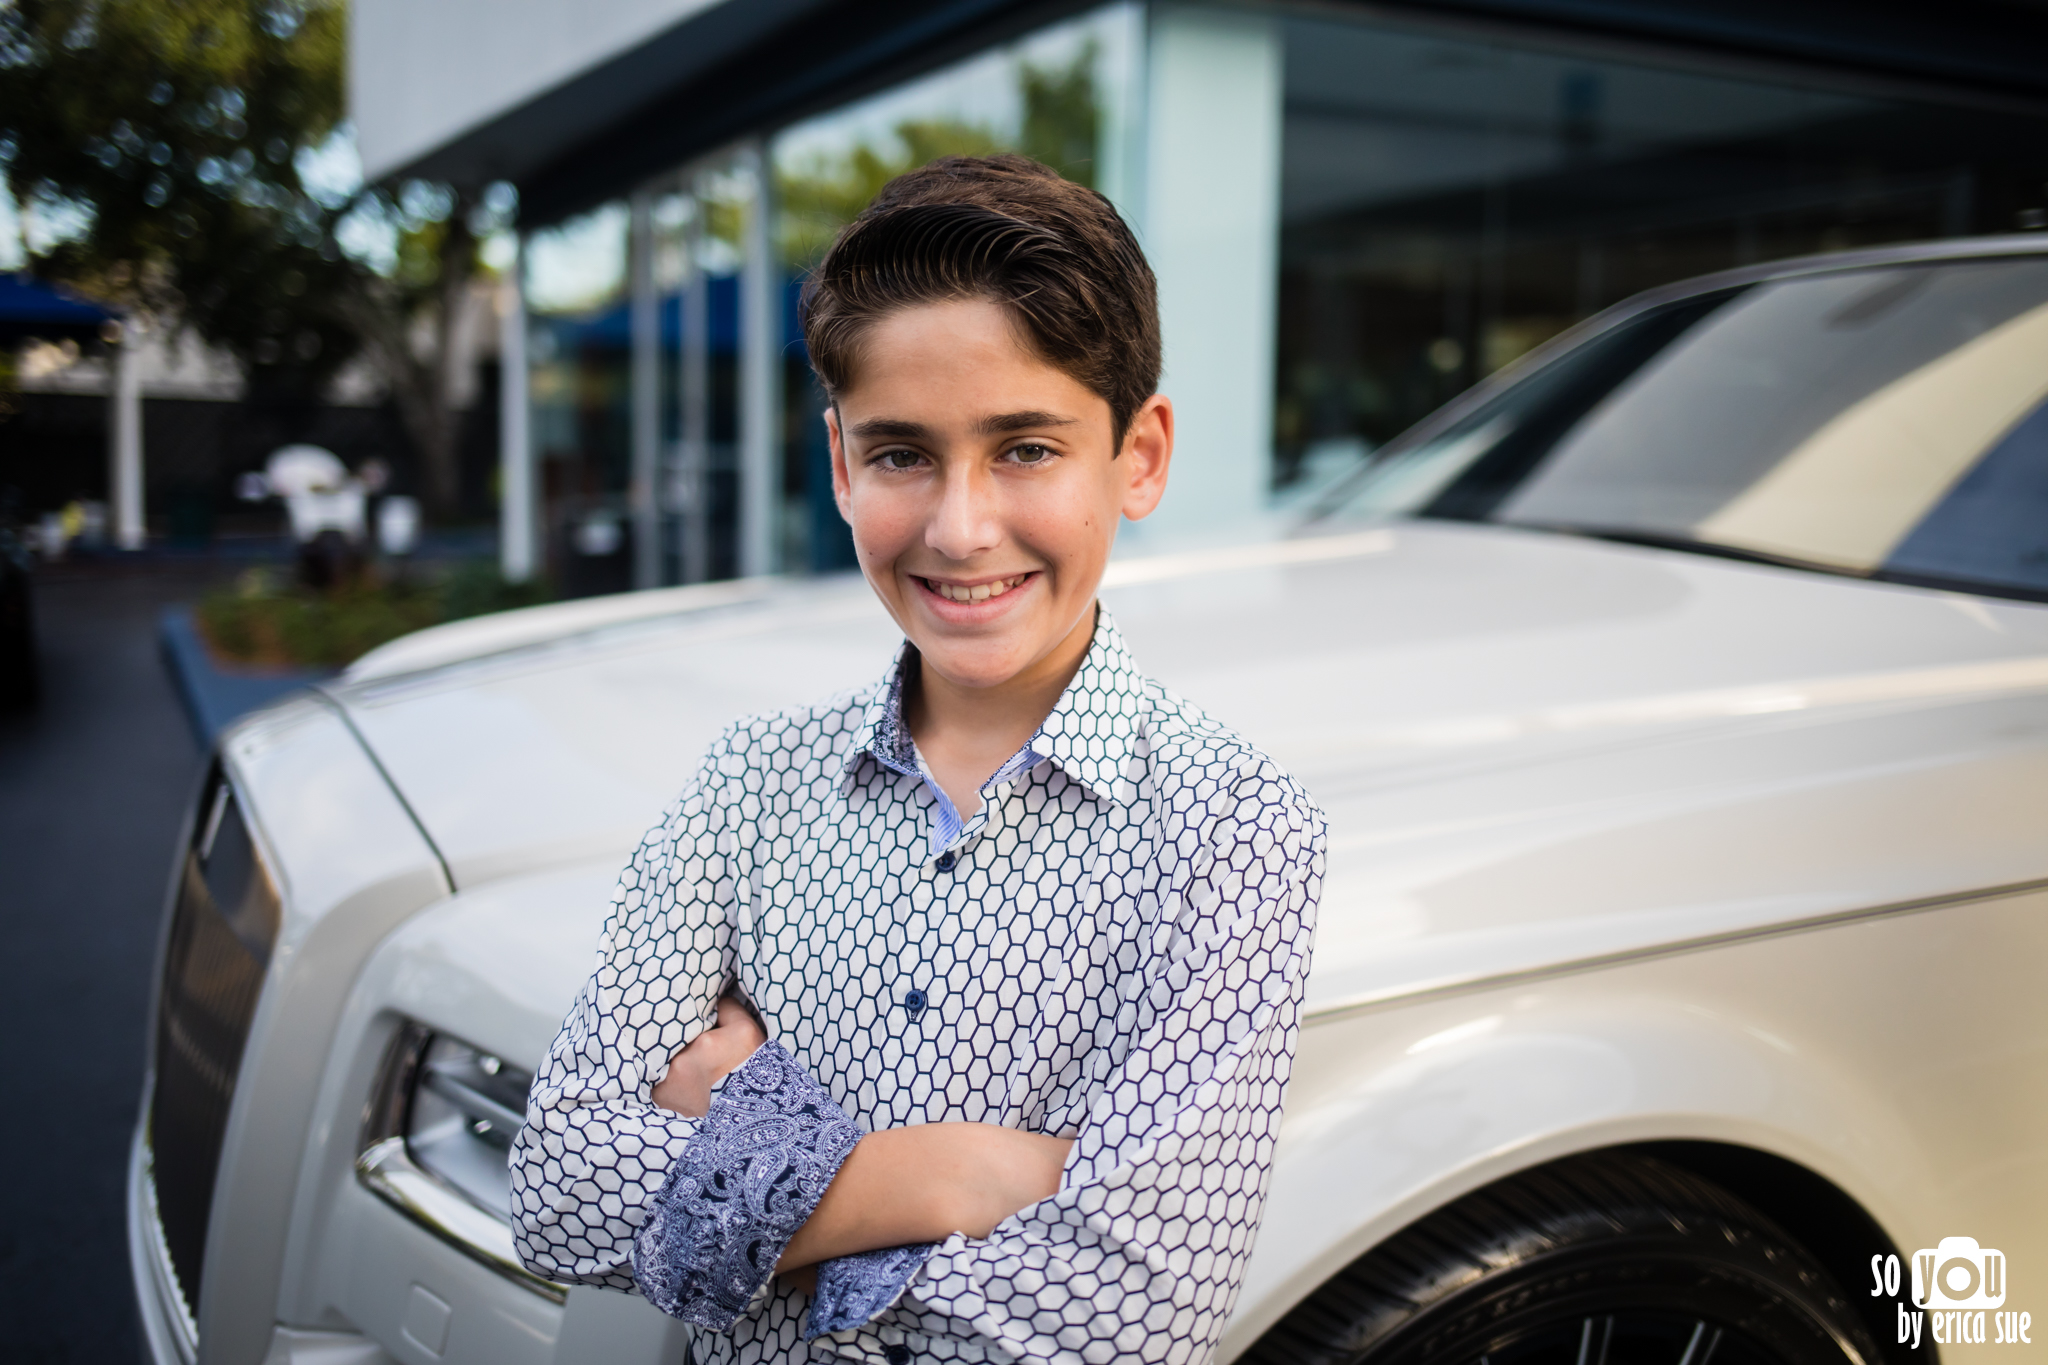 so-you-by-erica-sue-mitzvah-photographer-collection-luxury-car-ft-lauderdale-4966.jpg